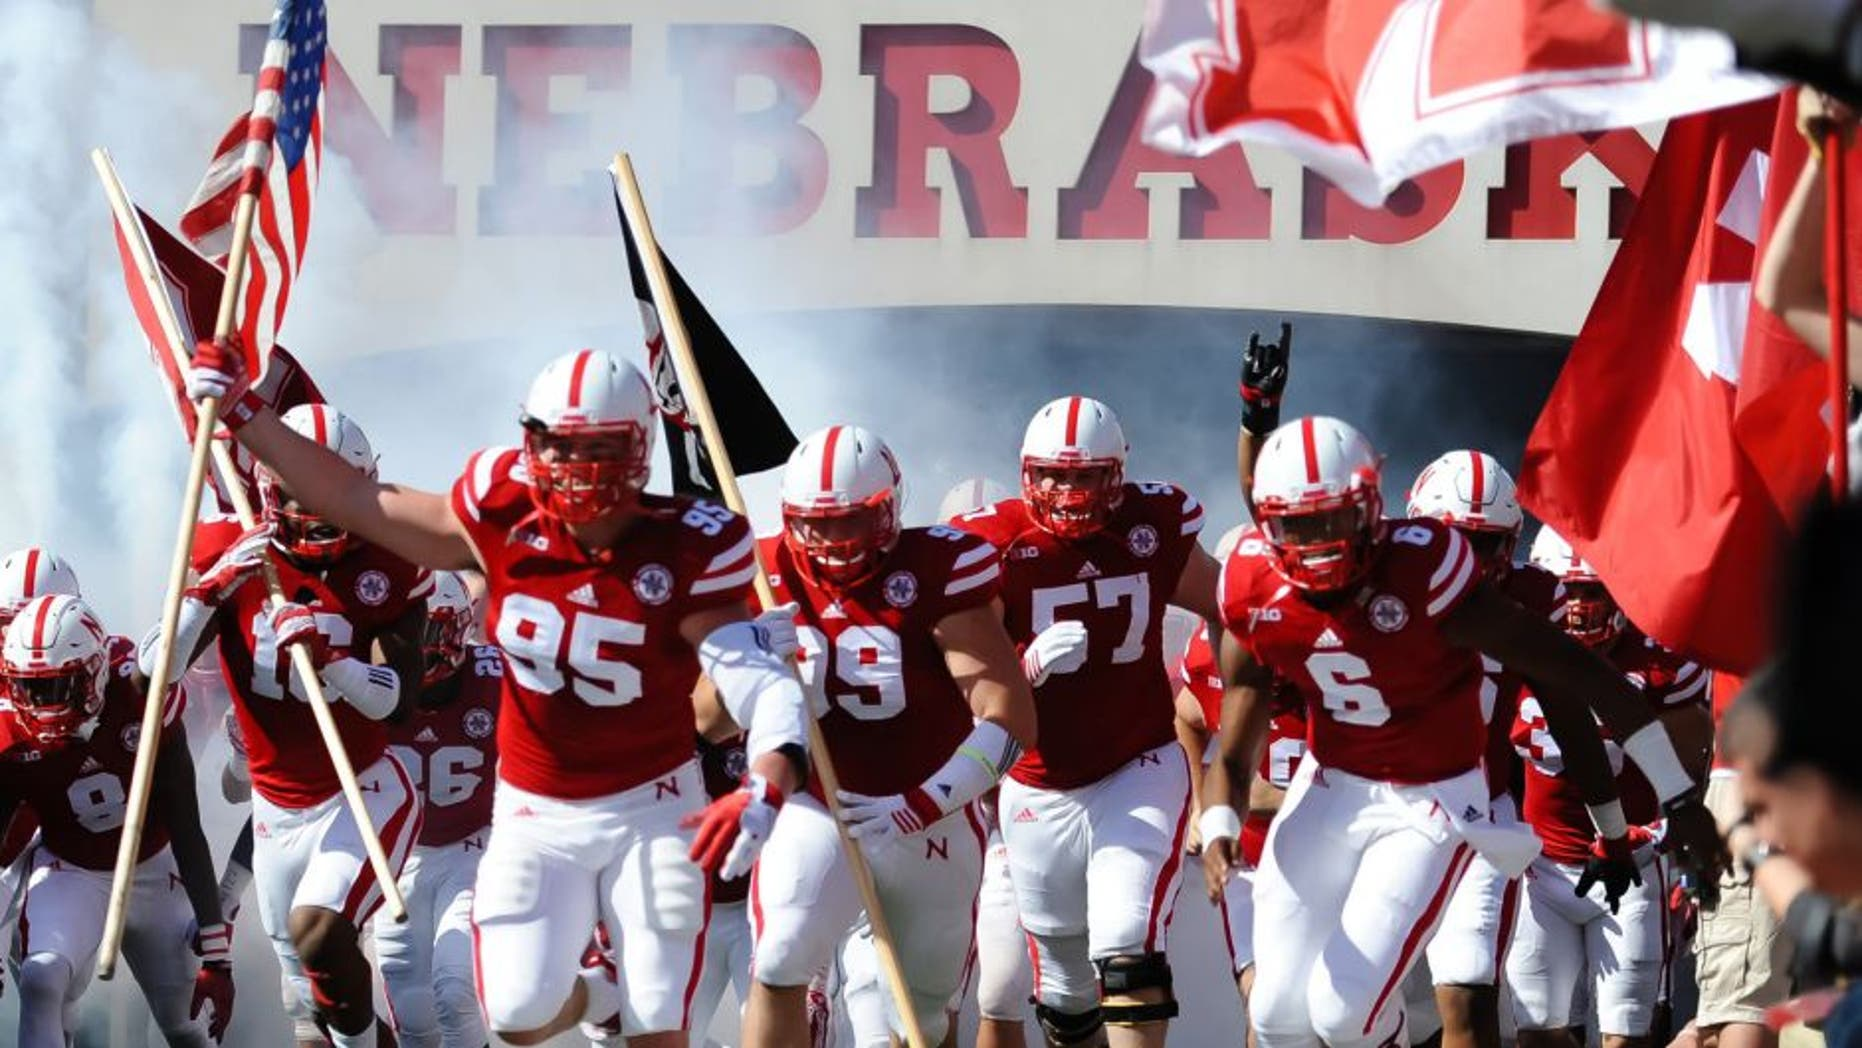 Oct 10, 2015; Lincoln, NE, USA; Nebraska Cornhuskers defensive end Jack Gangwish (95) leads the team on the field against the Wisconsin Badgers at Memorial Stadium. Mandatory Credit: Steven Branscombe-USA TODAY Sports